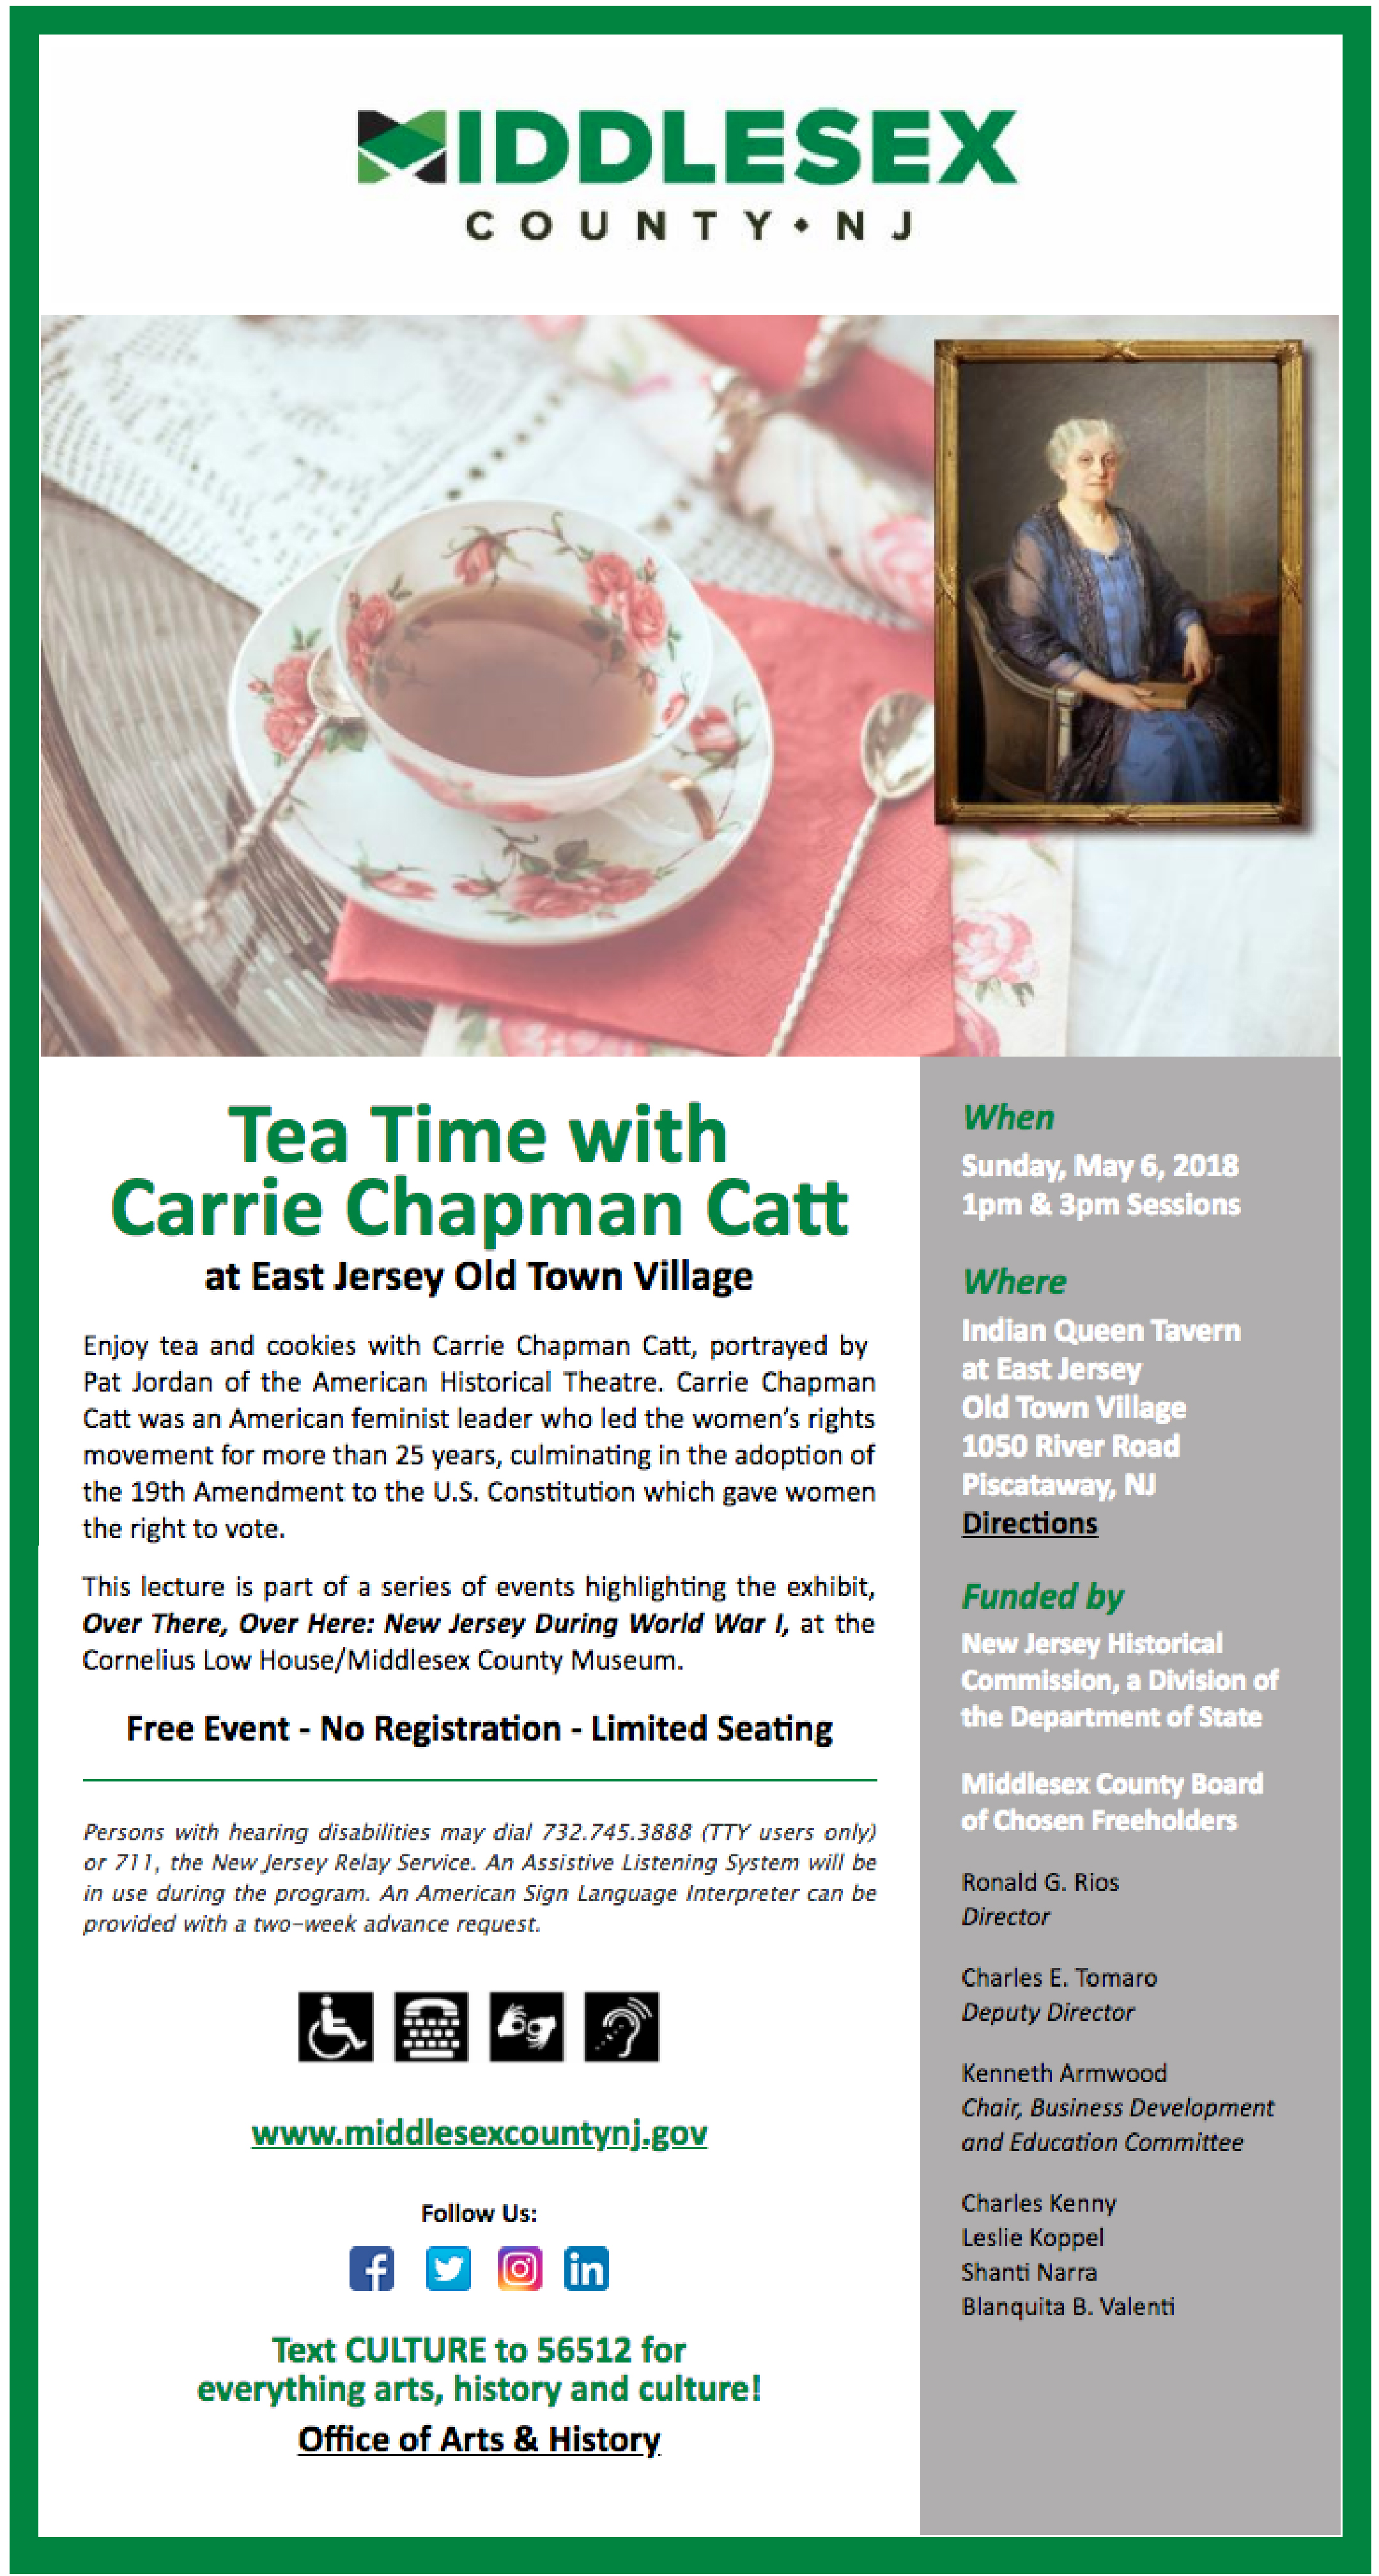 Tea Time with Carrie Chapman Catt CC